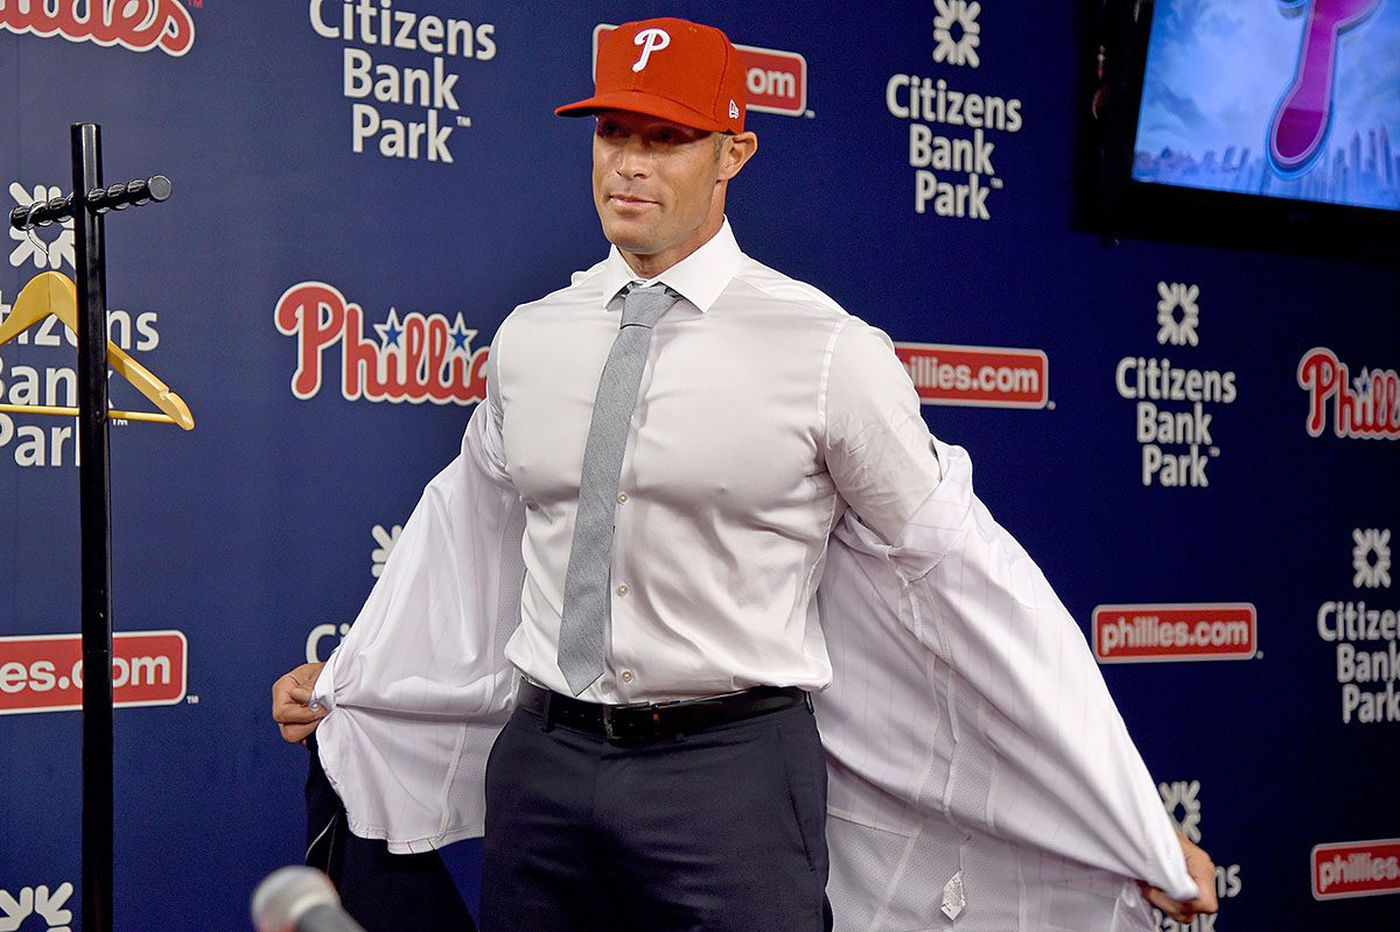 Gabe Kapler, Phillies manager, becomes face of ambitious change